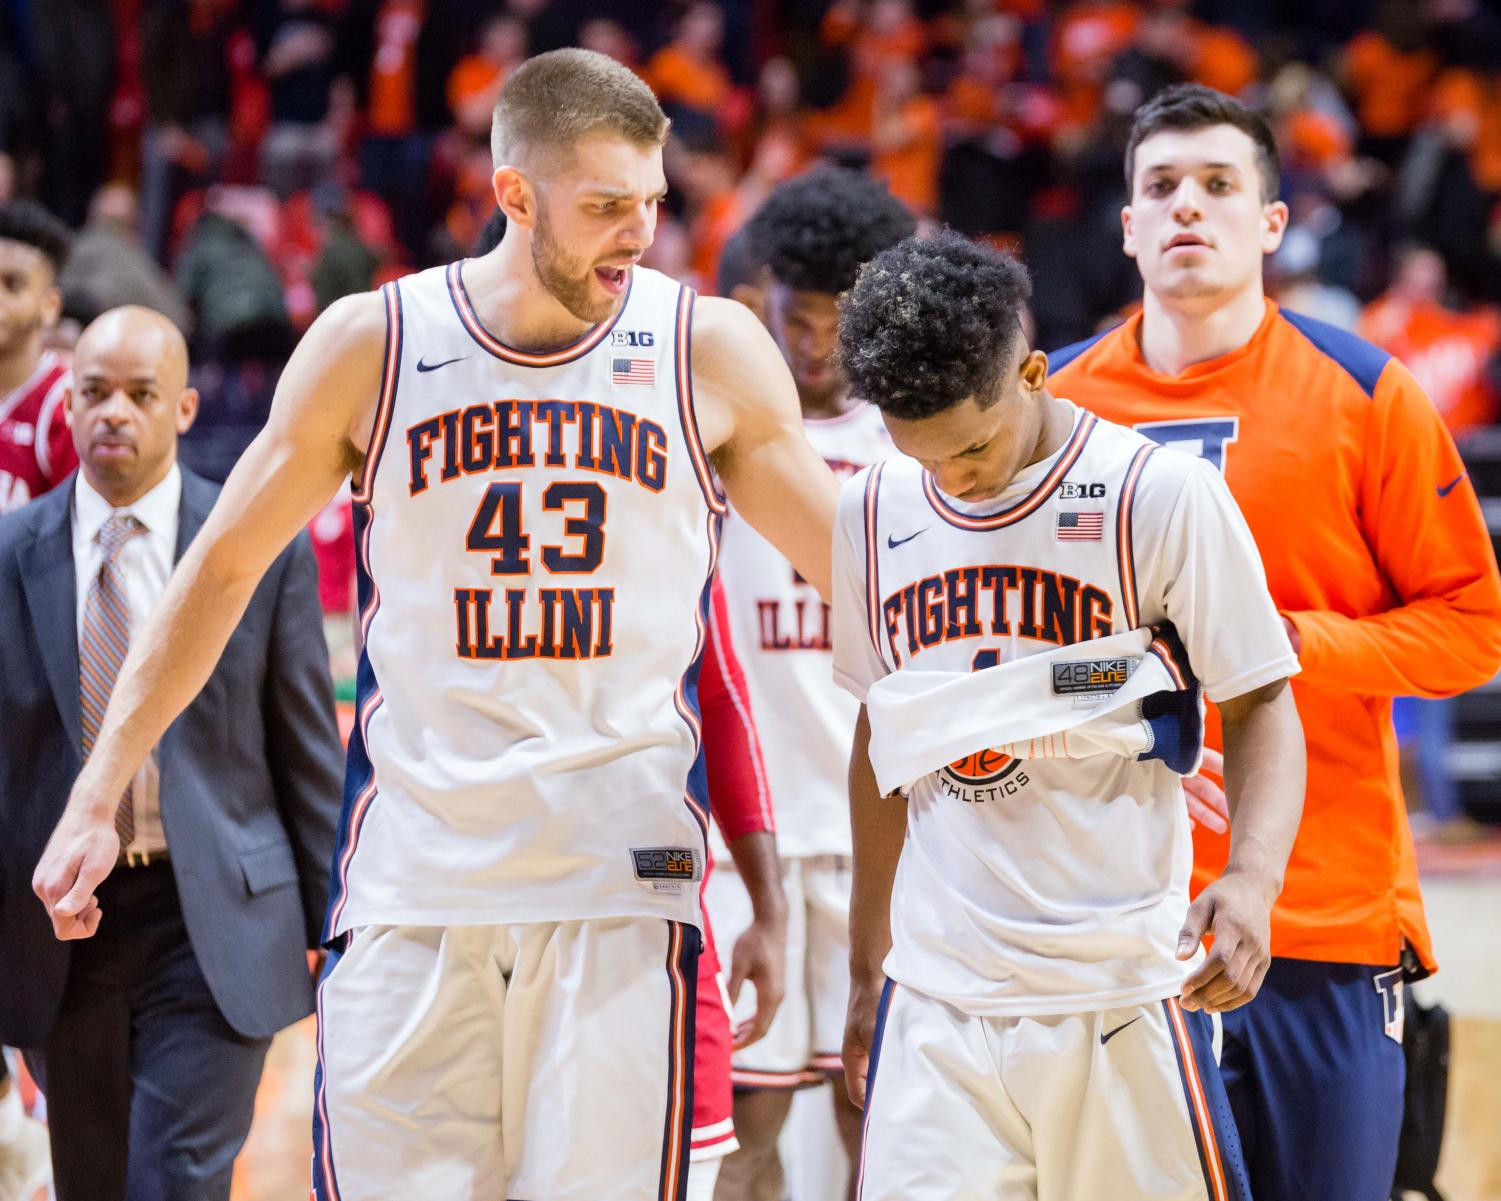 Illinois forward Michael Finke gives Illinois guard Trent Frazier a pat on the back after the game against Indiana at State Farm Center on Wednesday, Jan. 24. The Illini won 73-71.